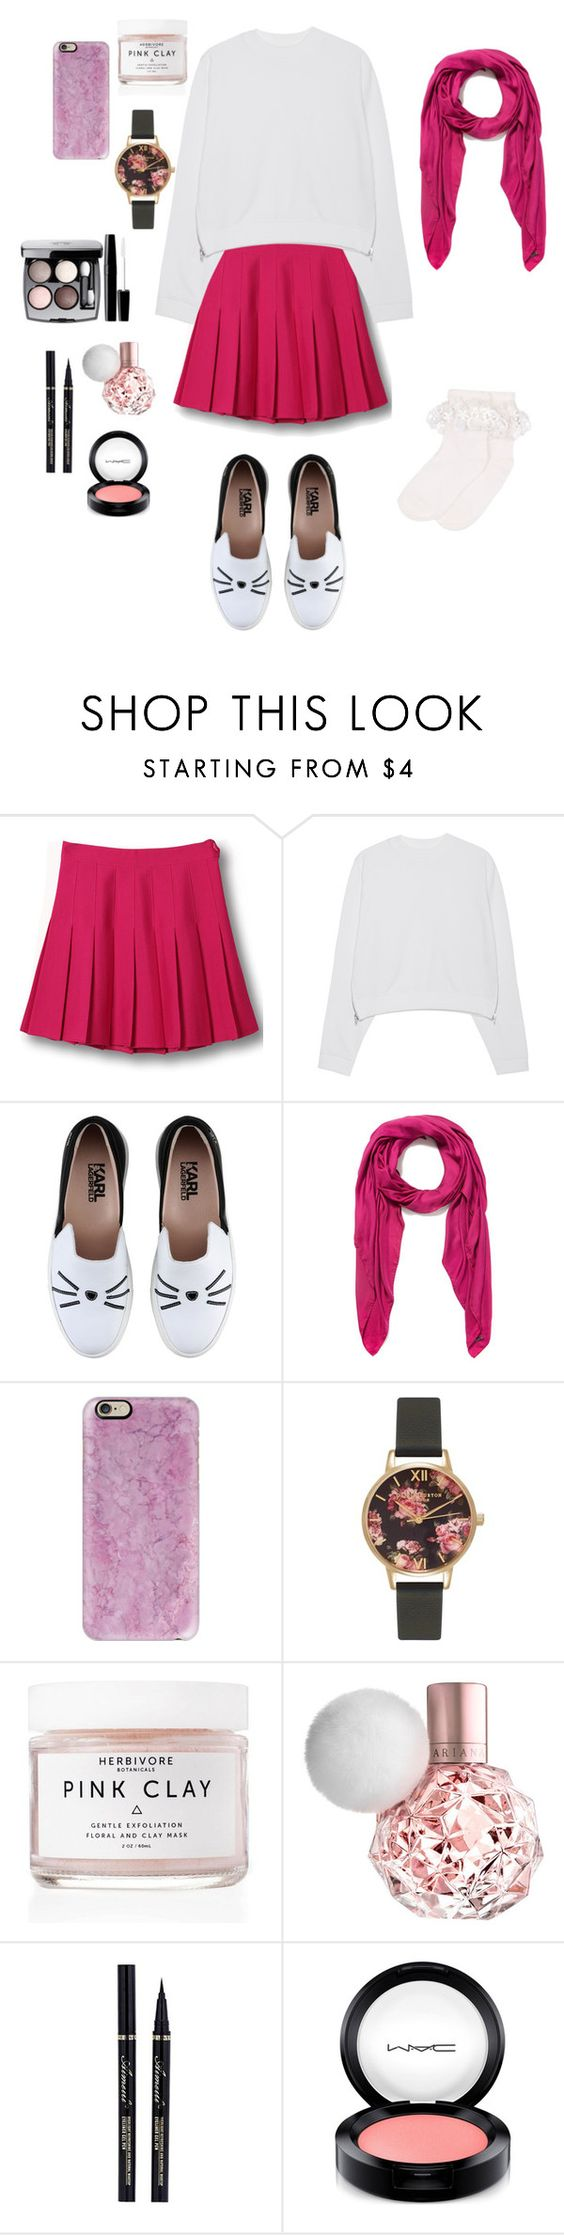 """Pink for life"" by bettyraven111 ❤ liked on Polyvore featuring WithChic, Acne Studios, Karl Lagerfeld, Faliero Sarti, Casetify, Olivia Burton, Herbivore Botanicals, Chanel, MAC Cosmetics and Monsoon"